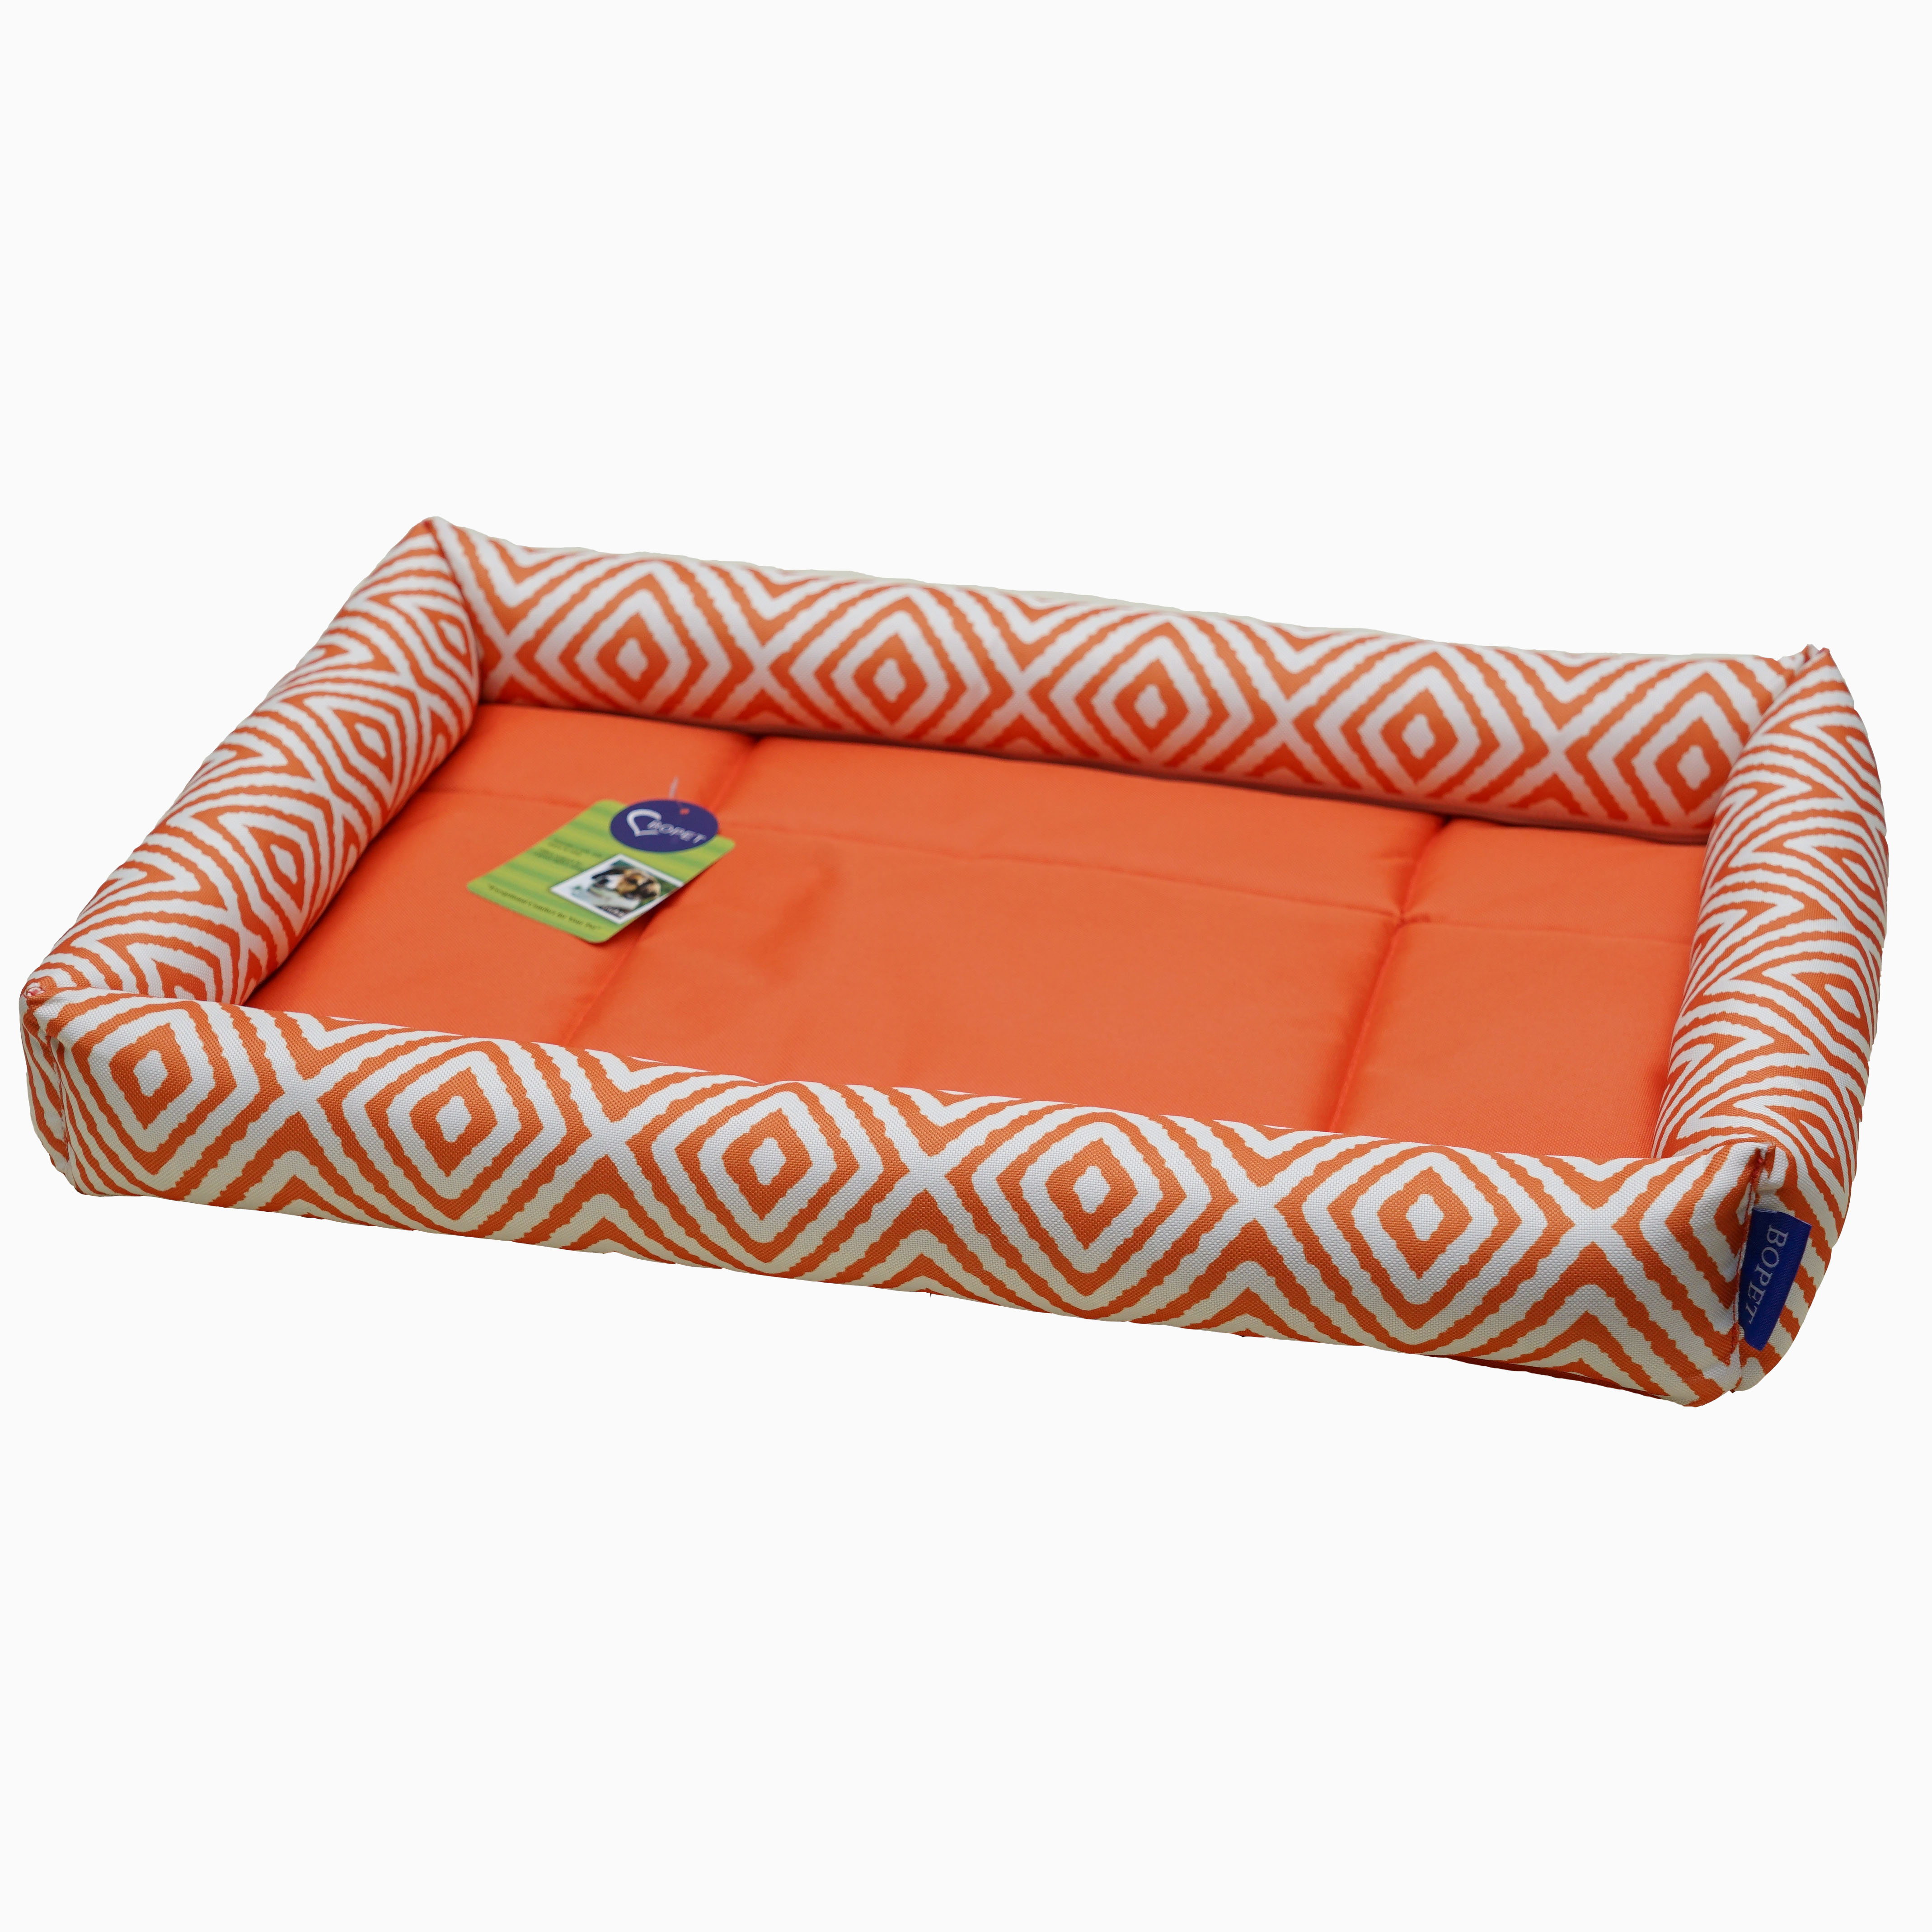 Dog Cool Pet Bed Summer PP Fiber Brand Bed Pet Eco Friendly Pet Products